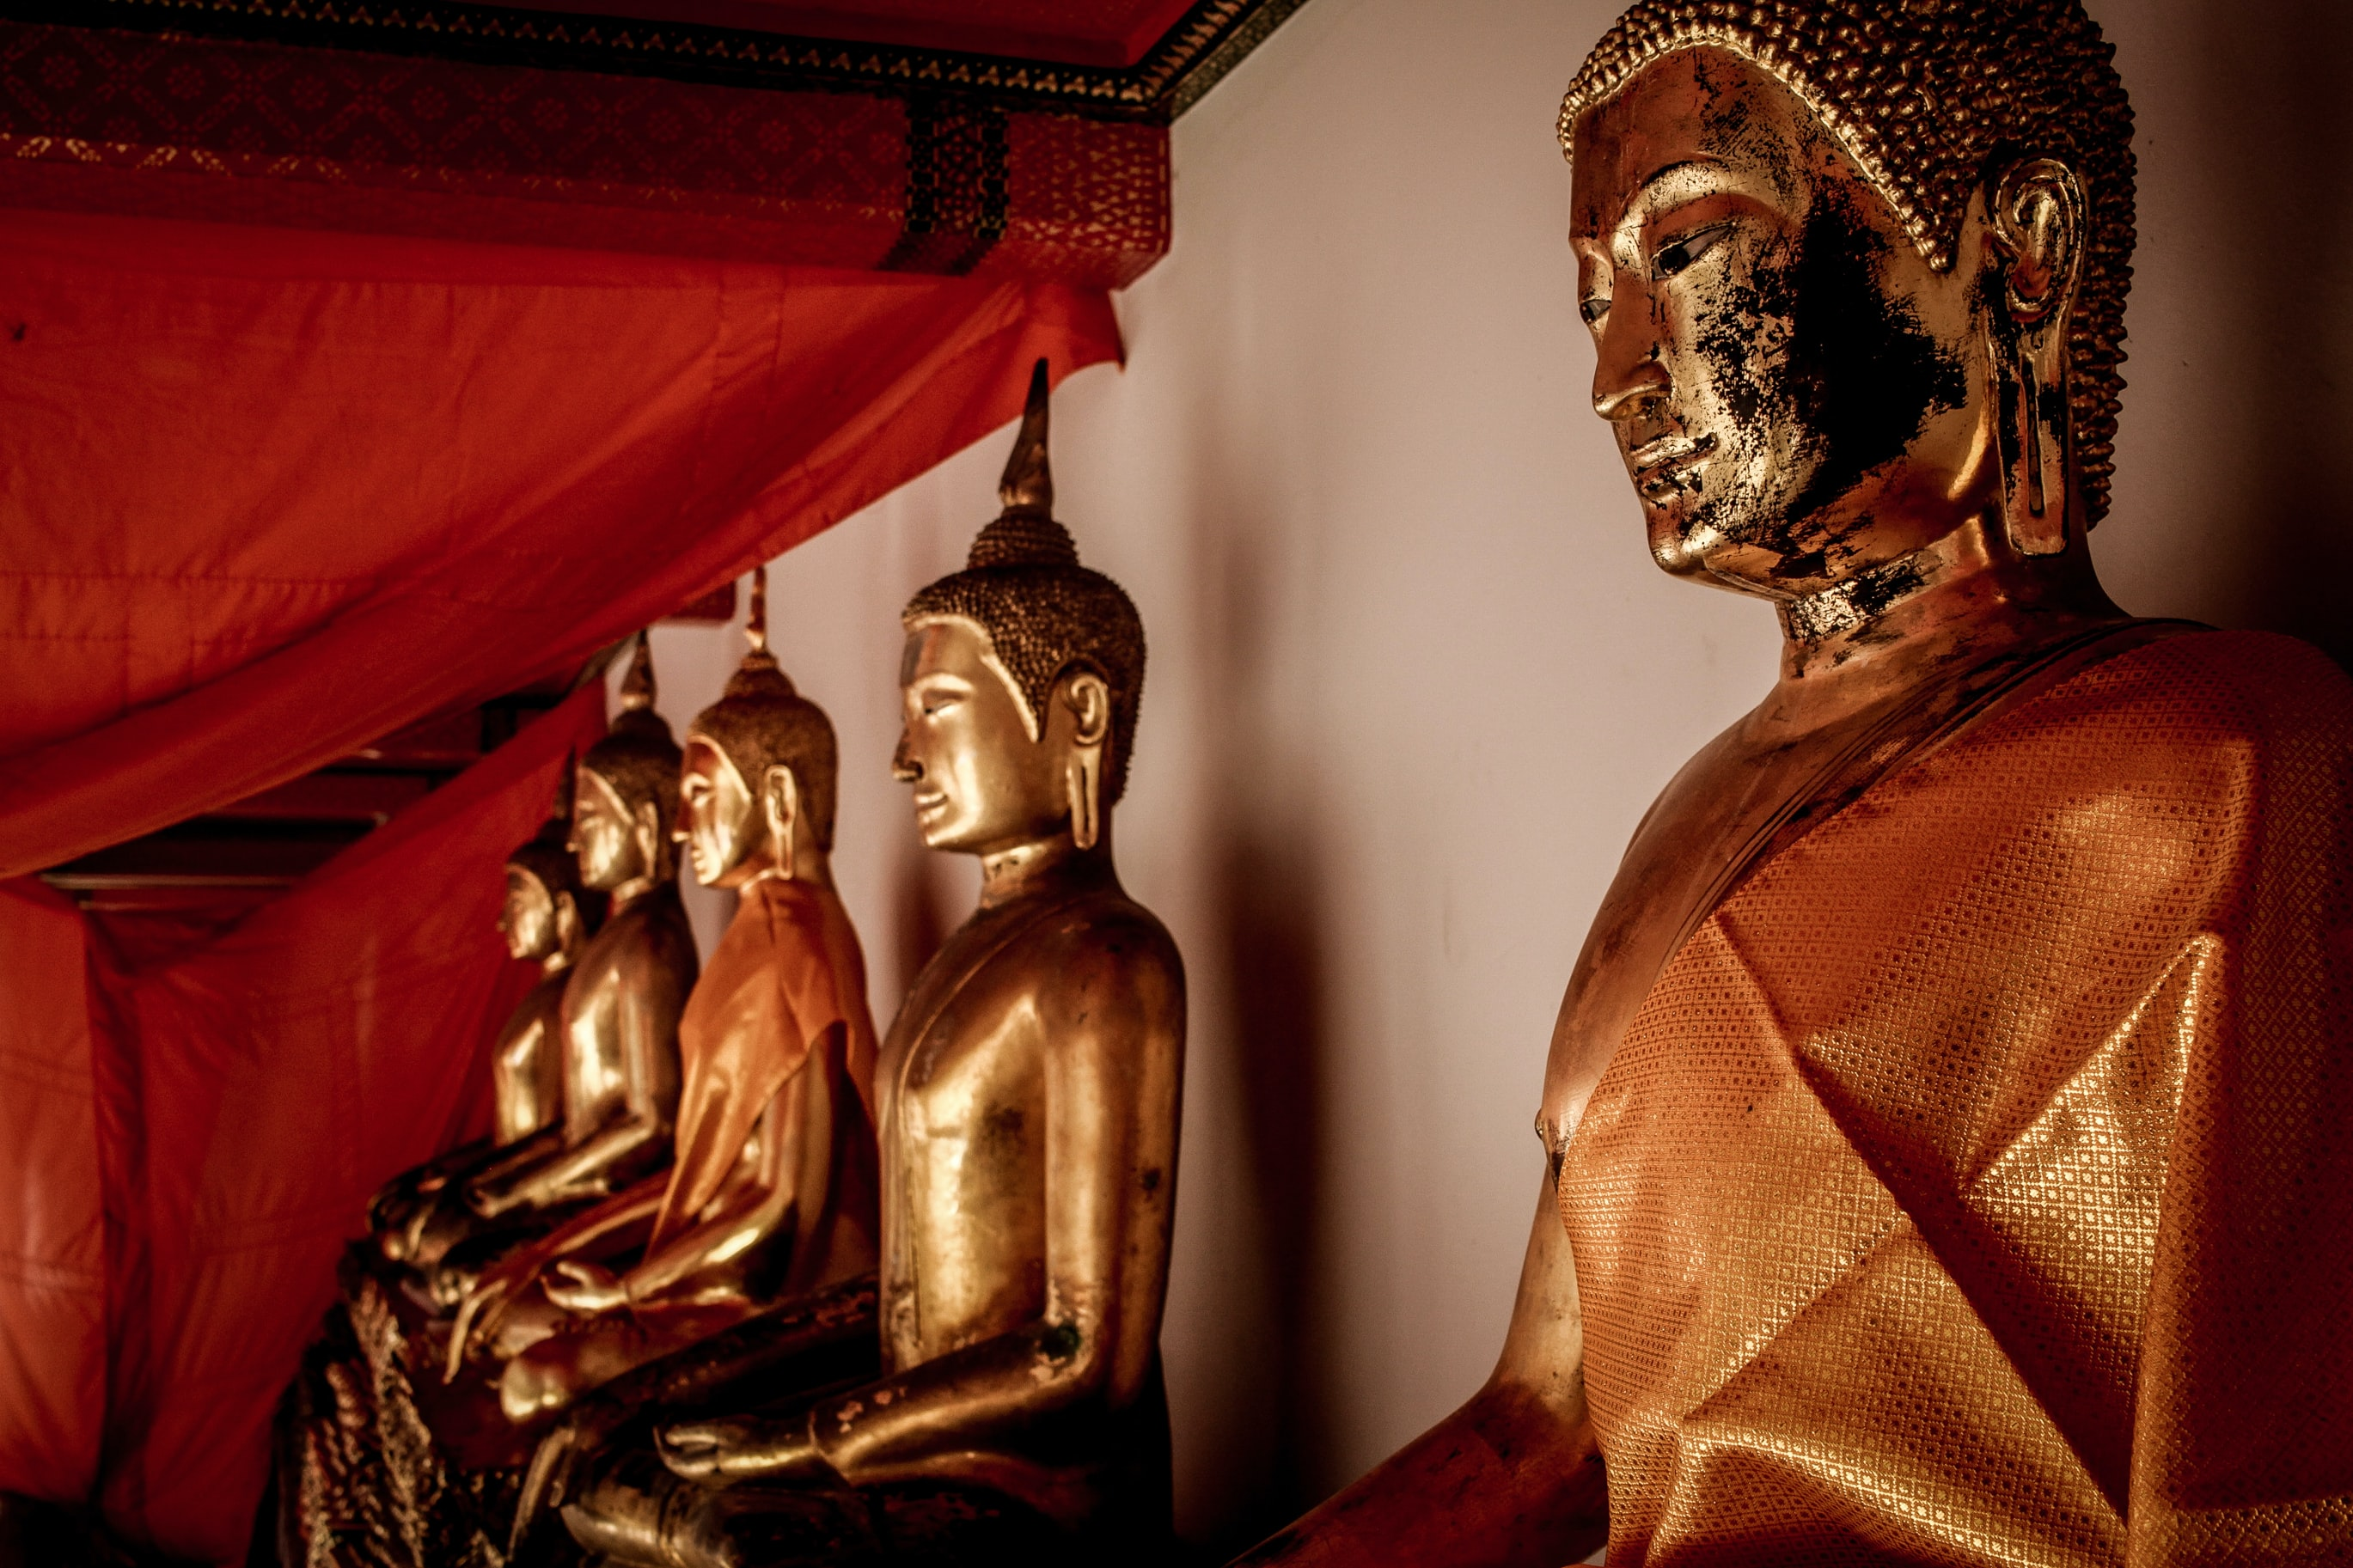 temple with Buddha statues